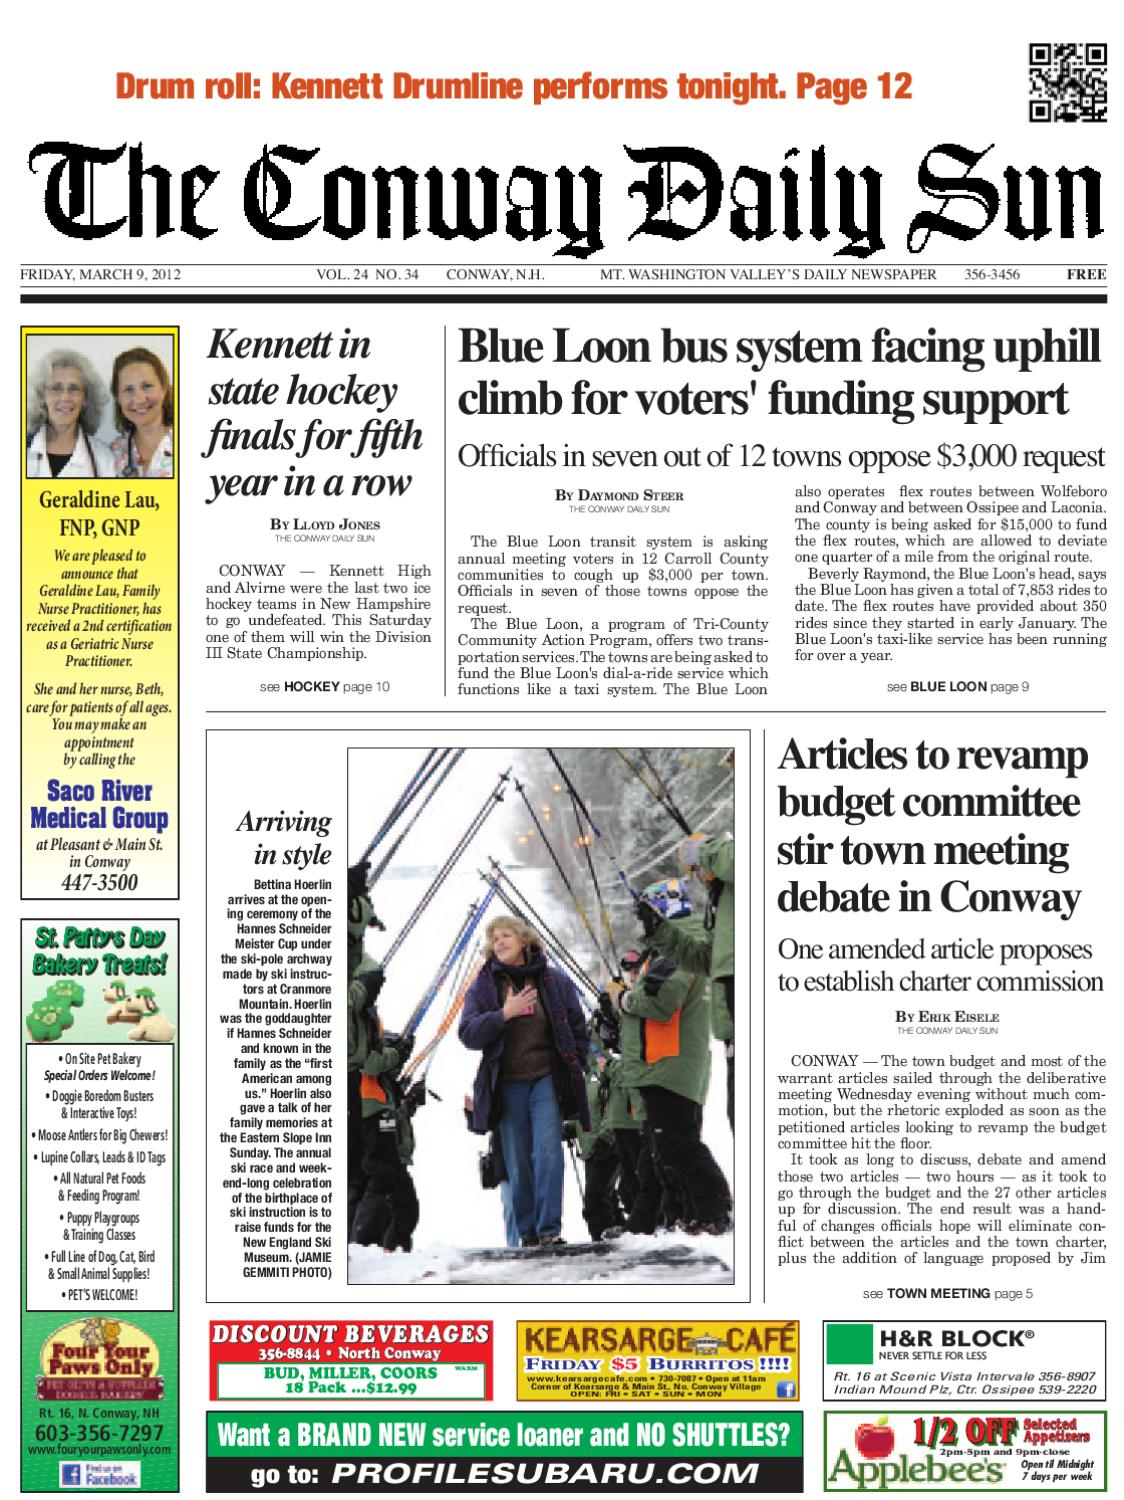 The Conway Daily Sun, Friday, March 9, 2012 by Daily Sun - issuu